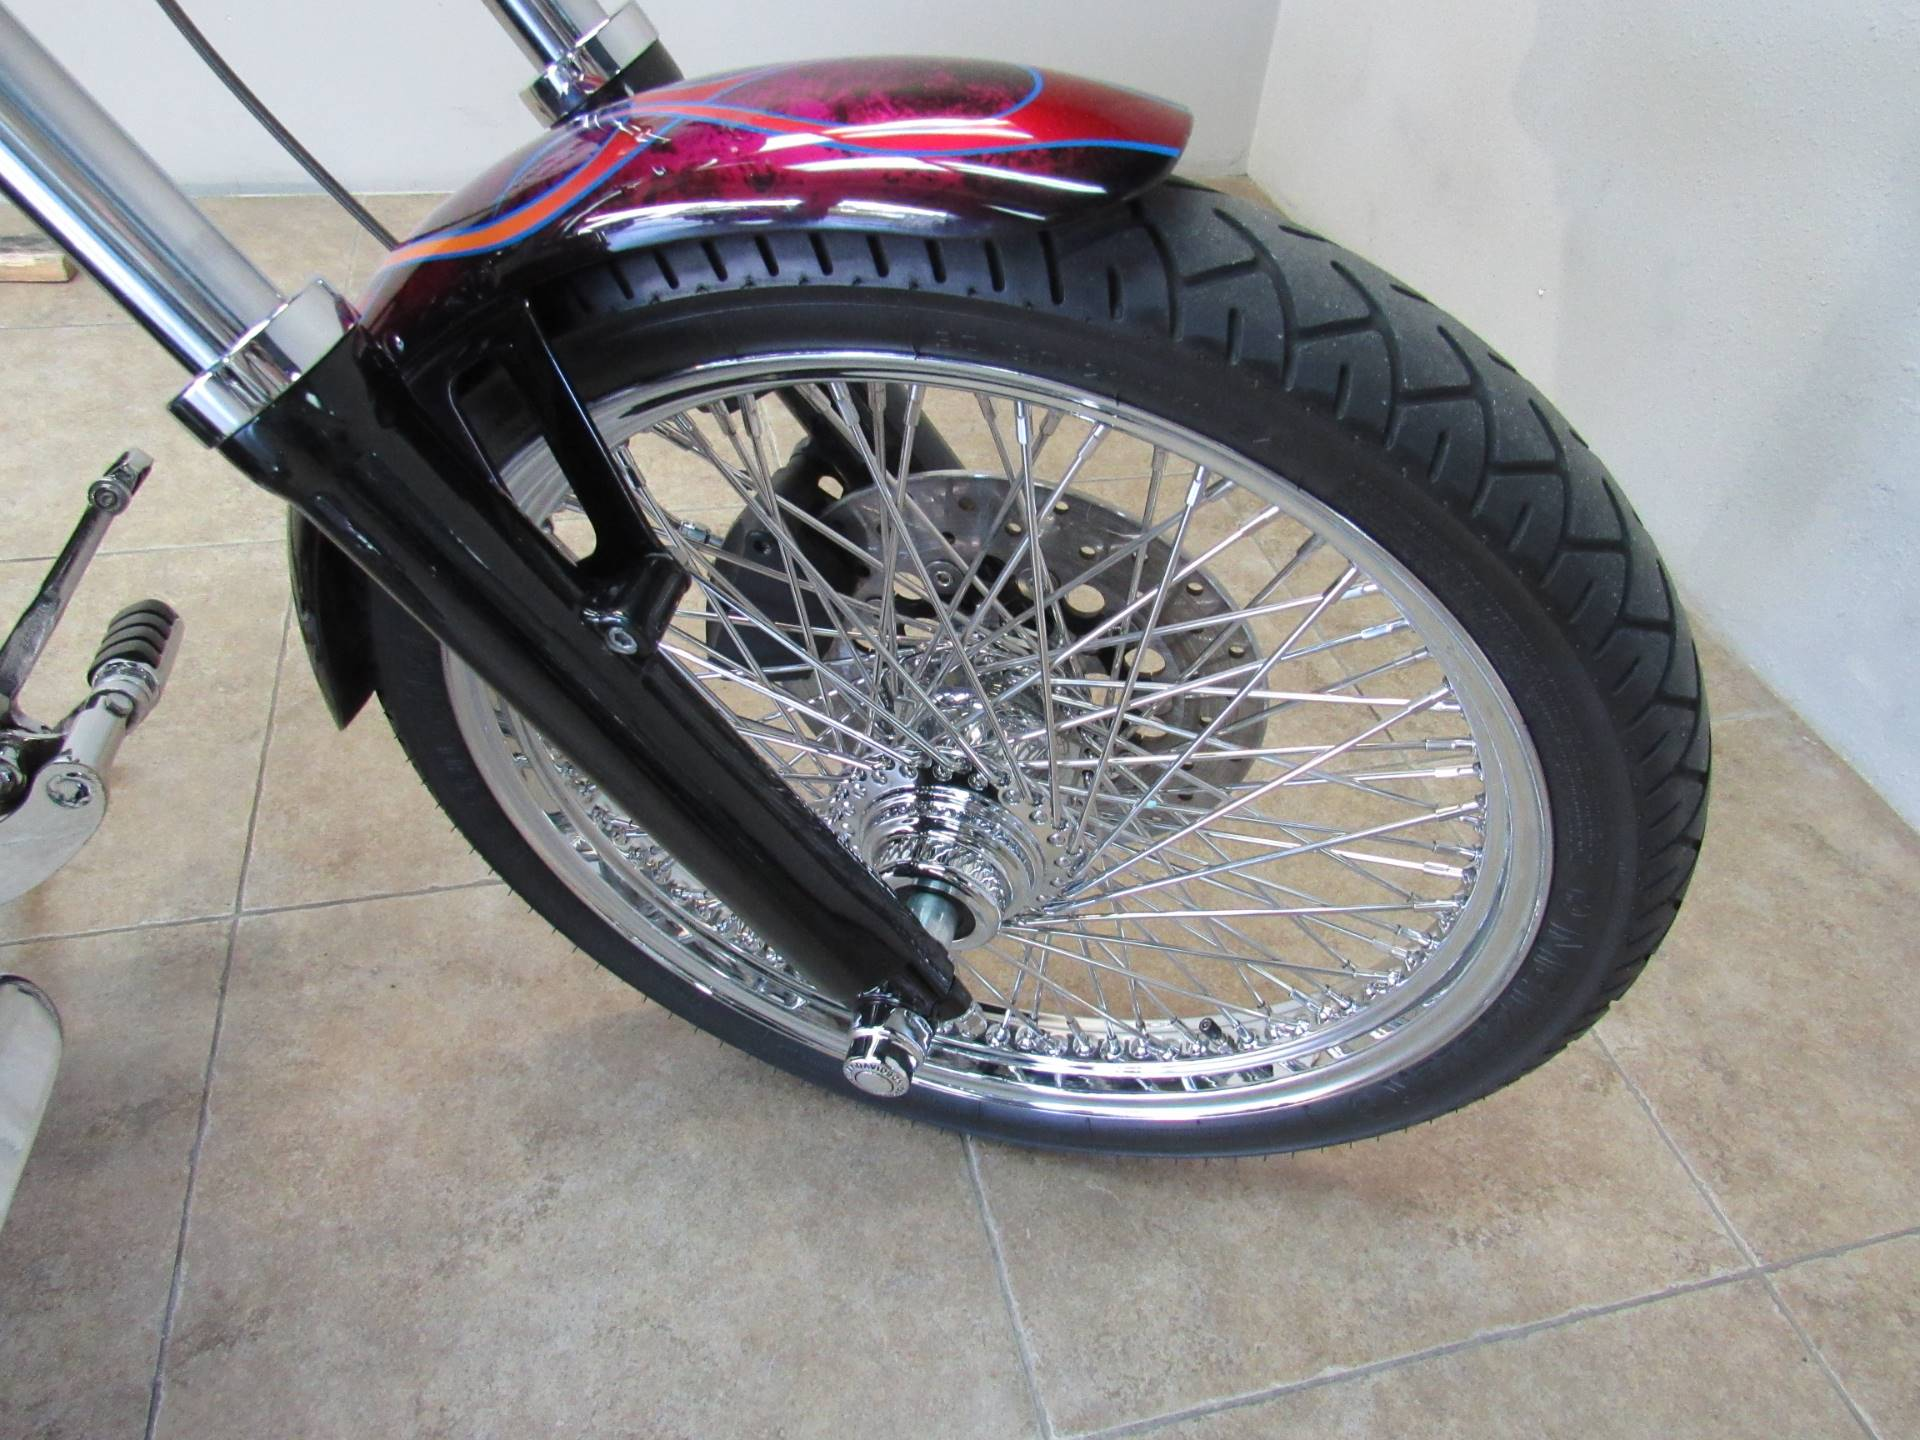 1996 Harley-Davidson softail custom in Temecula, California - Photo 5